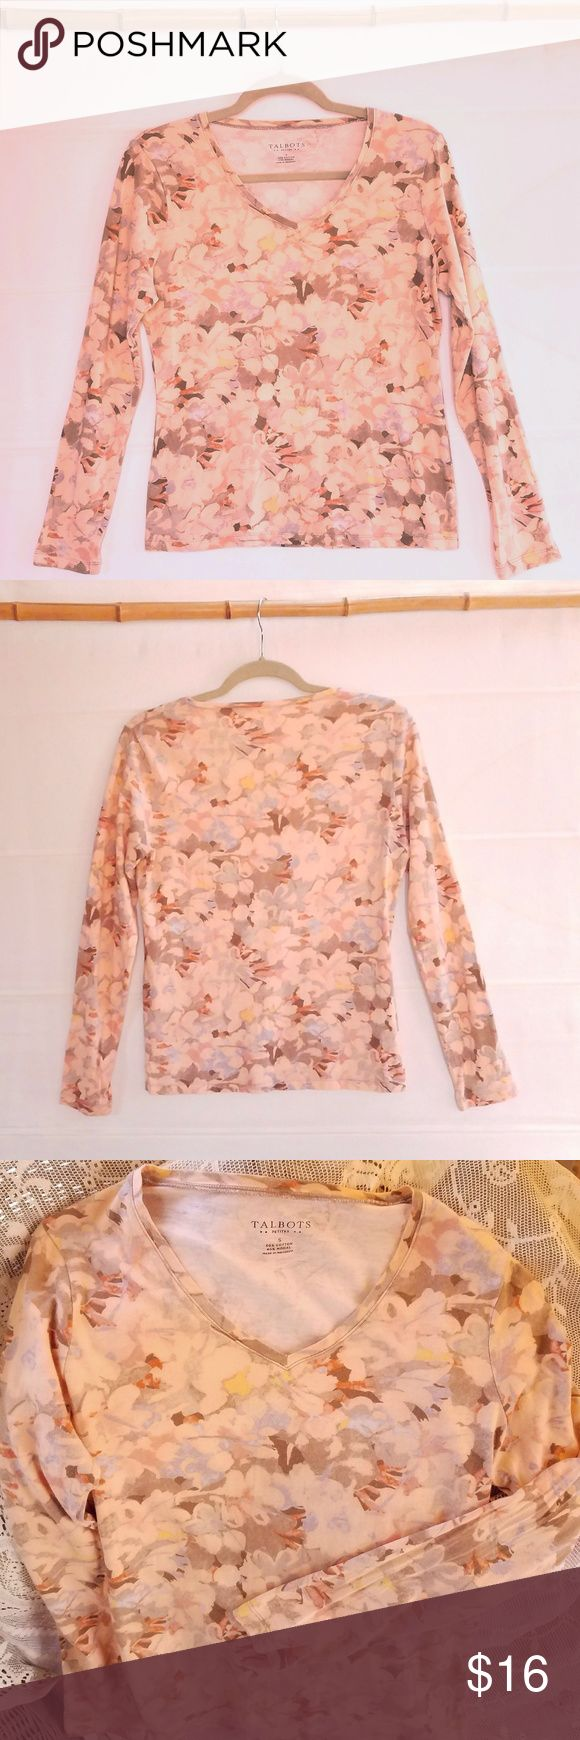 """Talbots Peach Floral Long-Sleeve Top V-neck, long-sleeve top by Talbots in pale peach watercolor floral print. Very soft cotton/rayon blend knit. Machine wash, cold. Very good condition, no flaws noted. Measurements (flat): chest/armpits 18"""", length 22 1/2"""", sleeve (under) 18"""". Talbots Tops"""